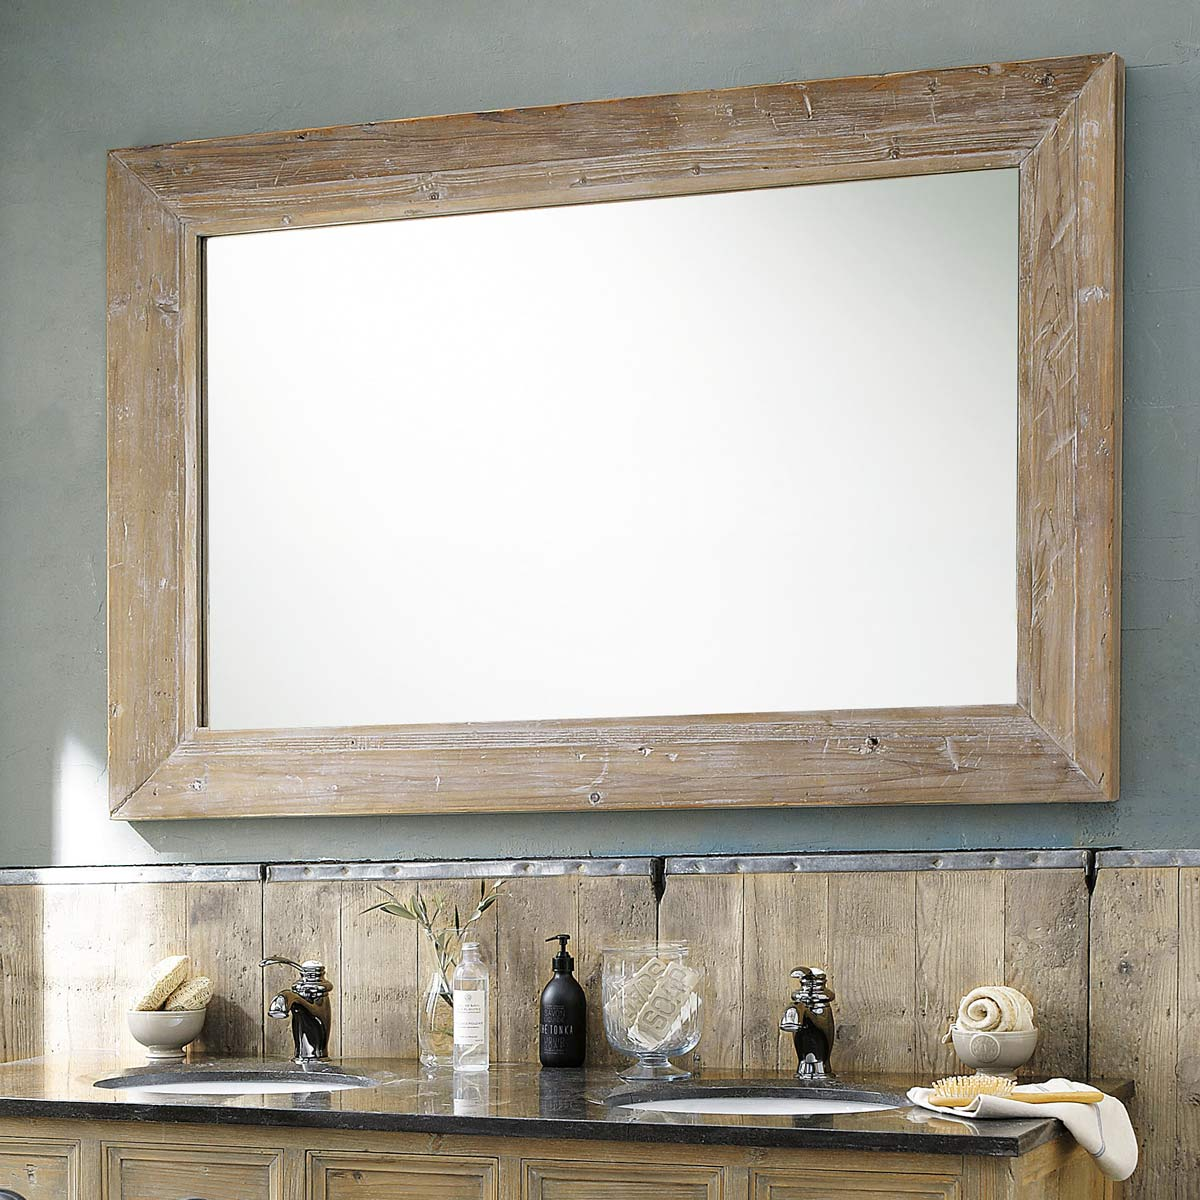 Grand miroir en bois naturel miroir d coration for Deco grand miroir